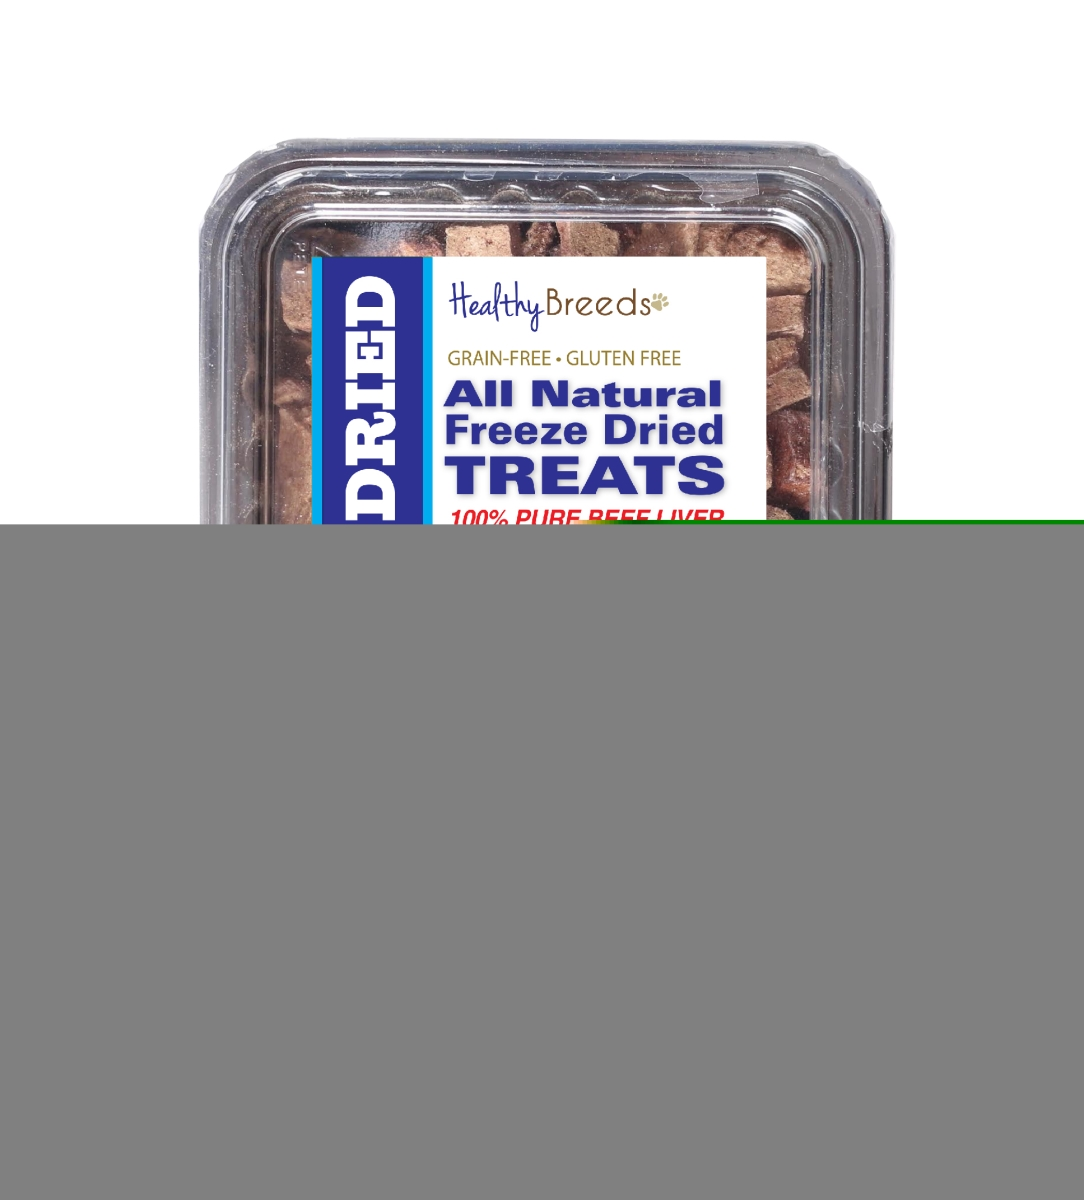 Healthy Breeds 840235148296 10 oz Norwich Terrier All Natural Freeze Dried Treats Beef Liver